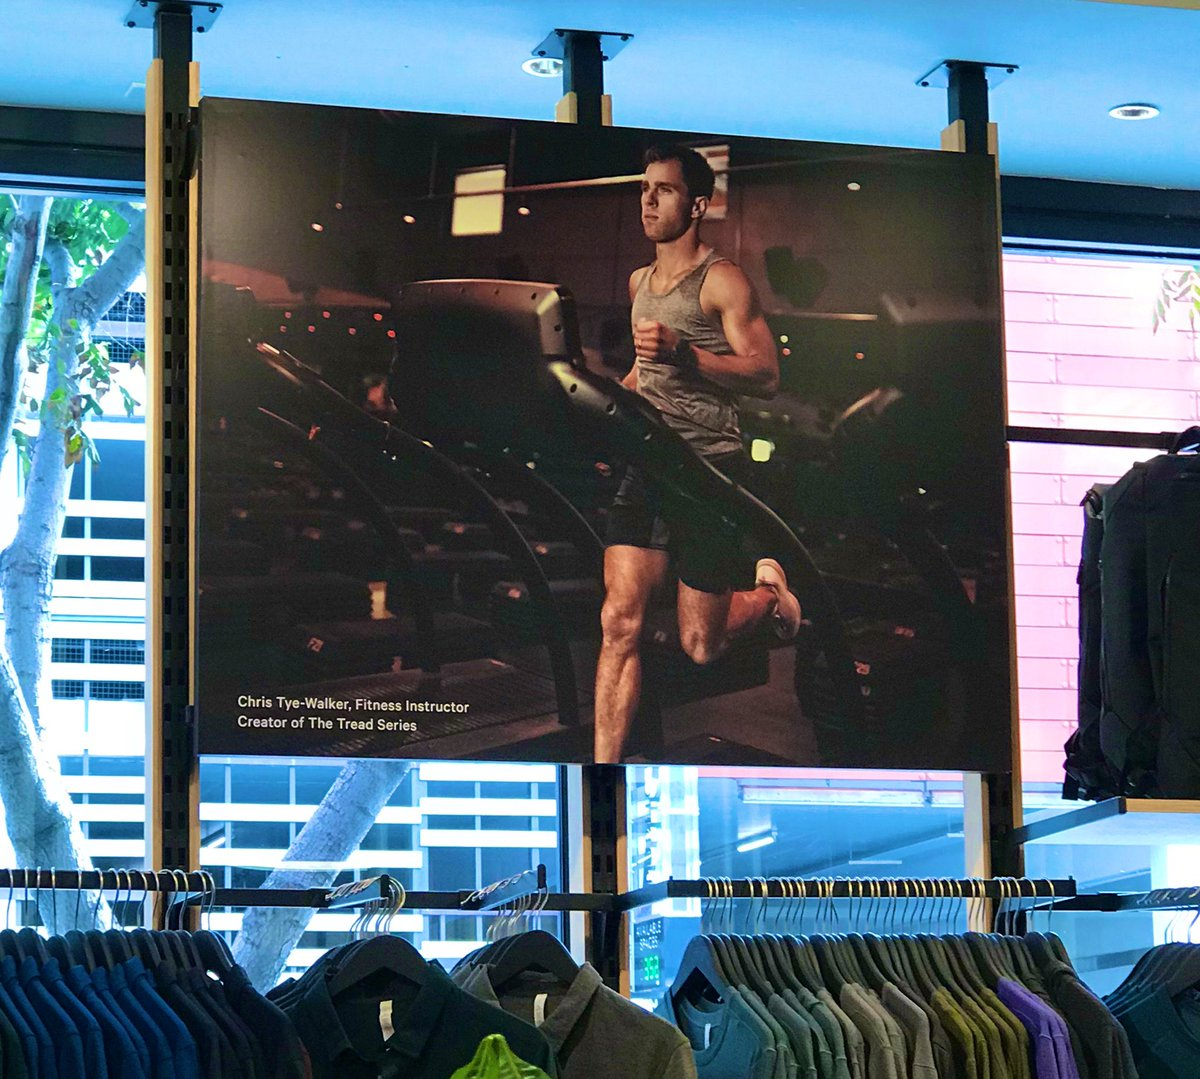 You can't escape #TheTreadSeries... even at @lululemon! Any day, any time, wherever you are, you can get an invigorating & effective 25min HIIT #treadmillworkout in with me at  http:// TheTreadSeries.com    . Choose an individual run from season 1 or run the full season 2! #treadmilltime <br>http://pic.twitter.com/2QZua1hhDh